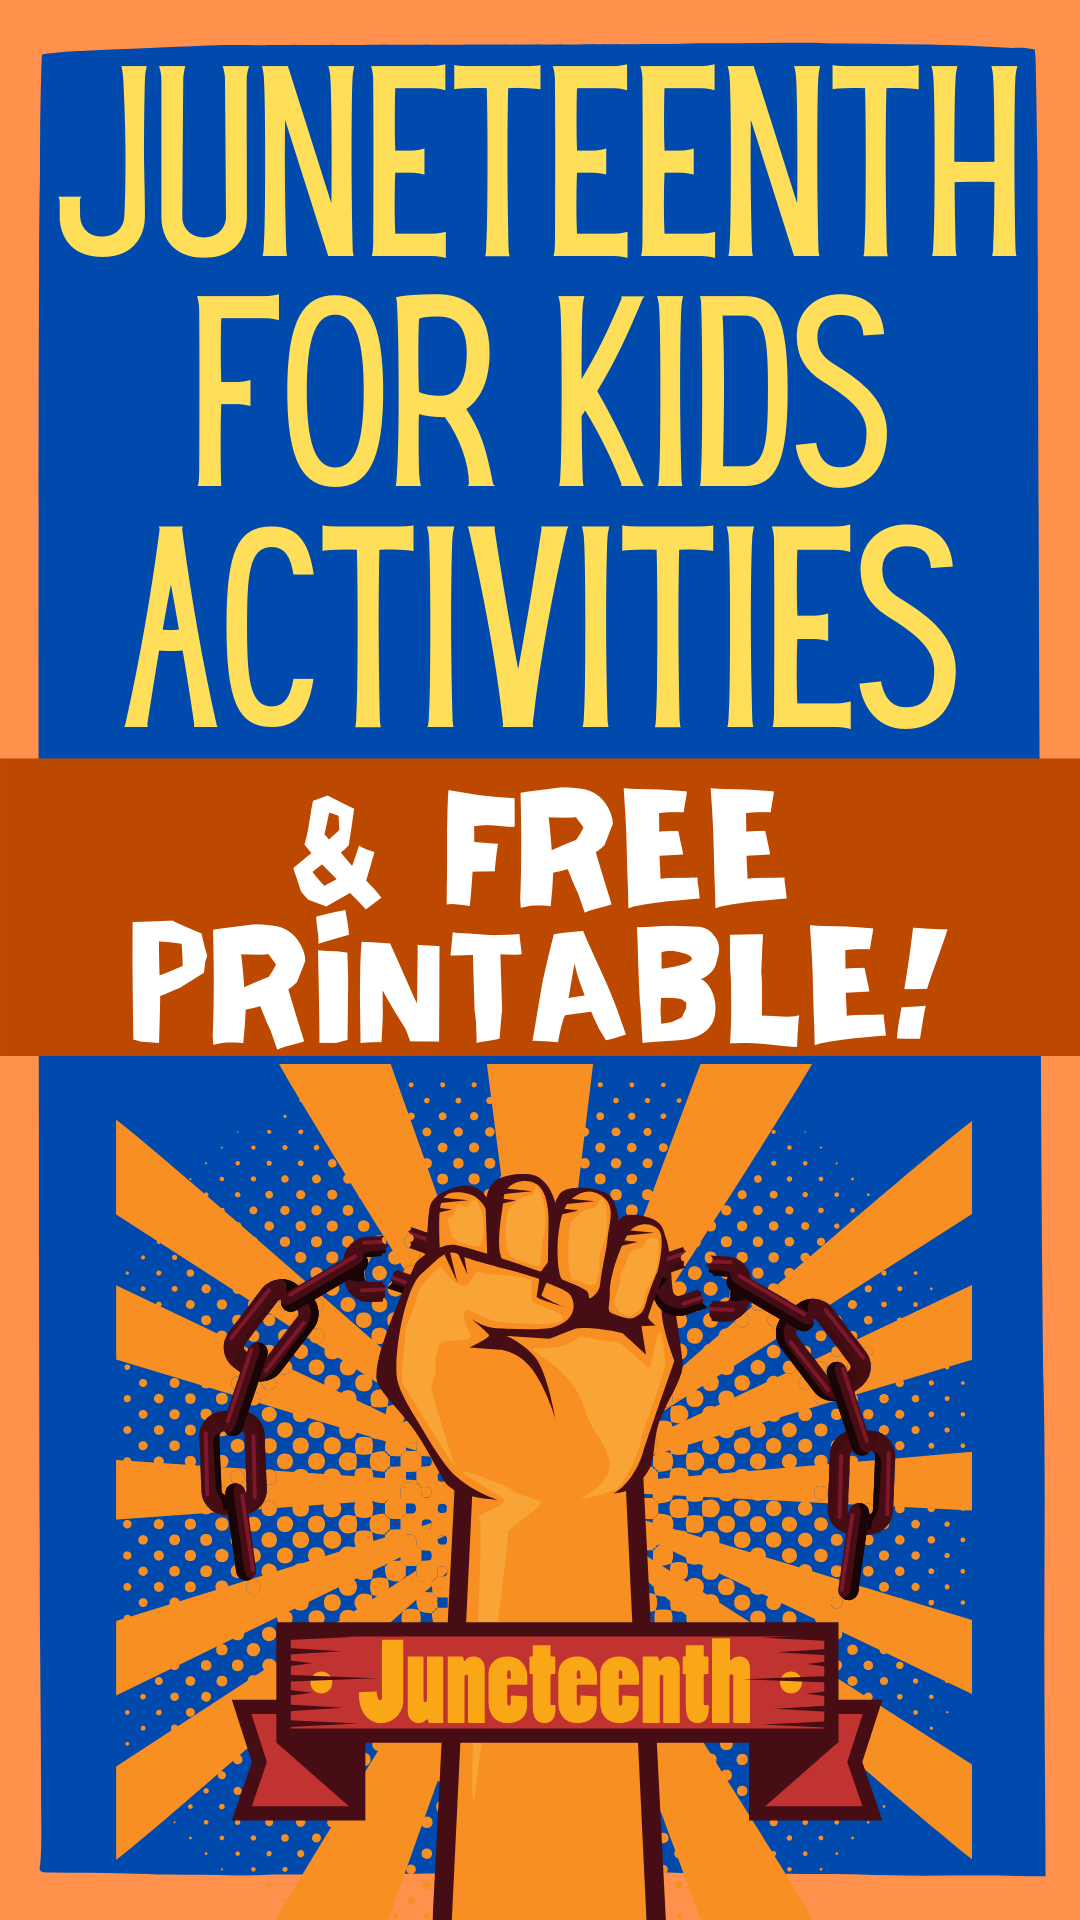 Juneteenth Celebration Ideas for kids with enslaved hand breaking free of chain